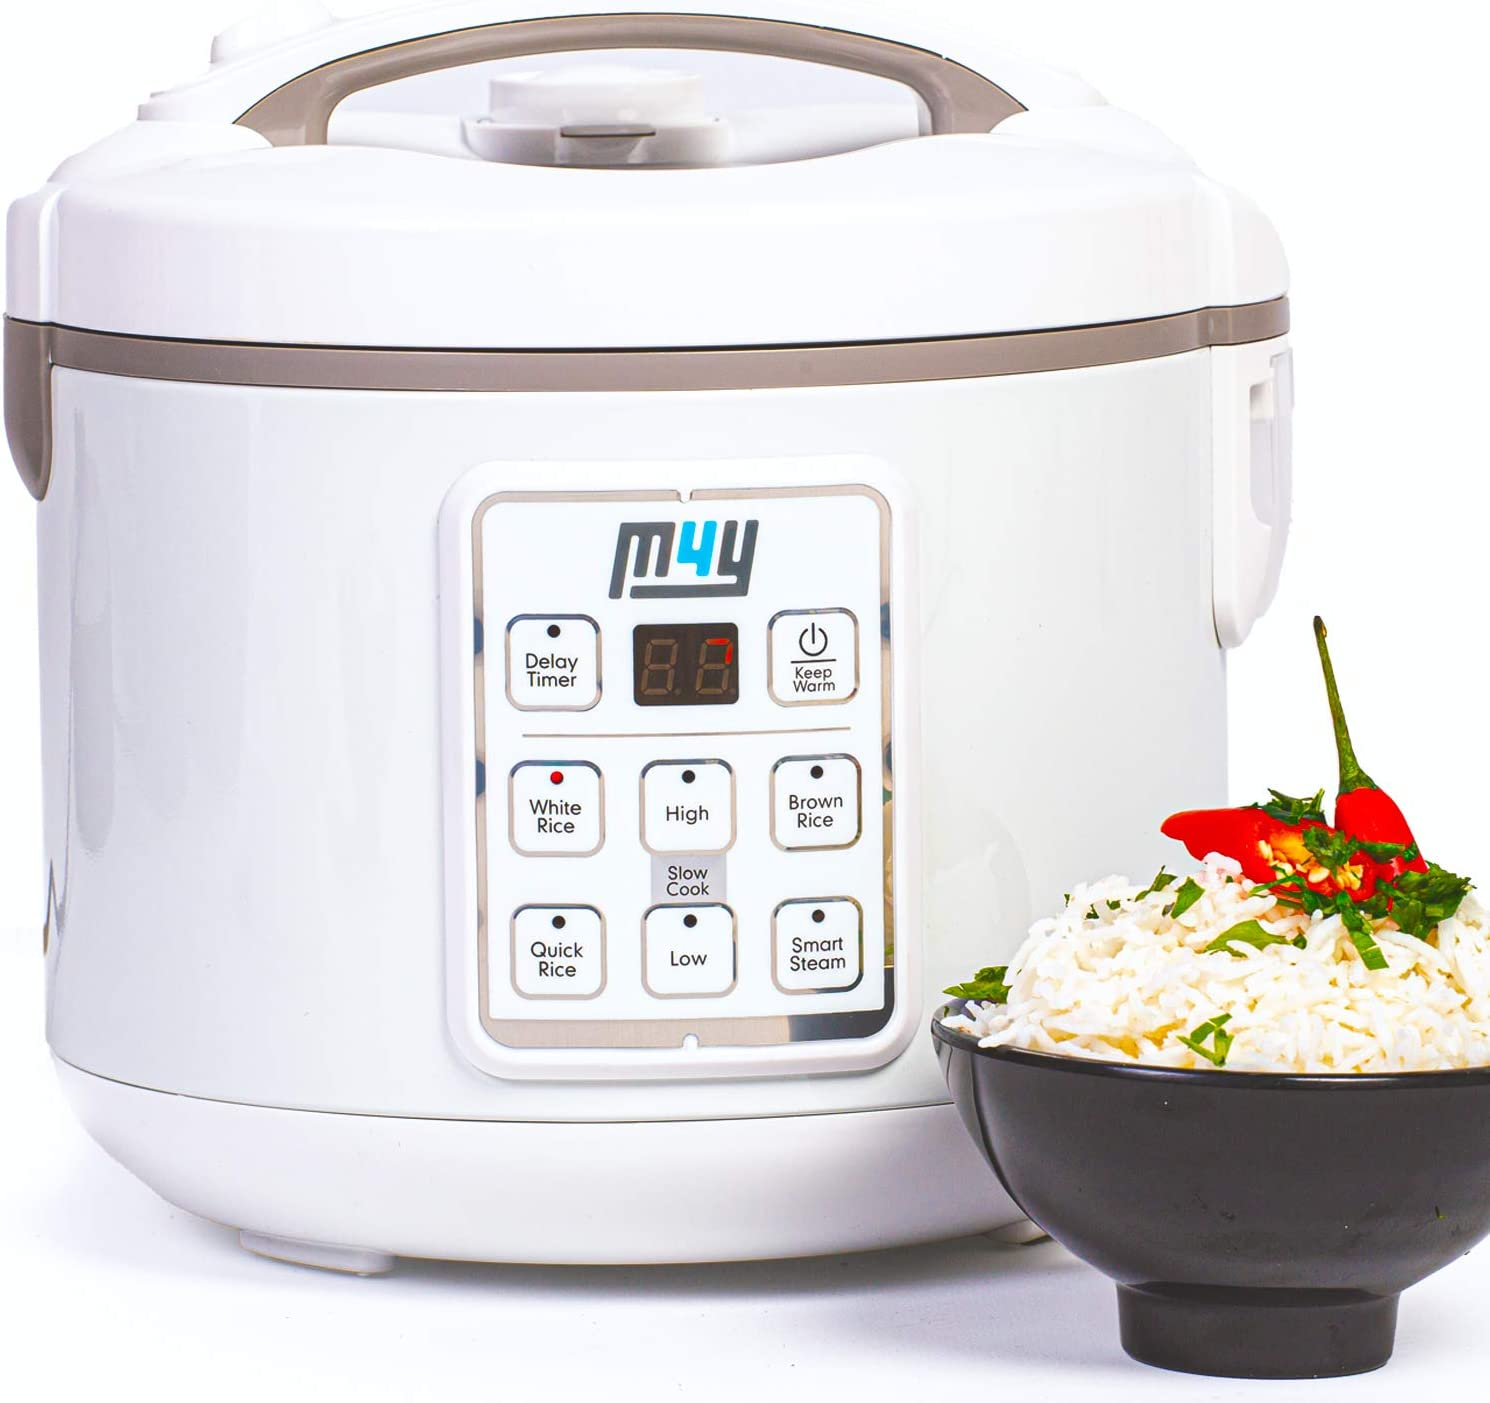 M4Y Rice Cooker, Slow Cooker and Food Steamer – 1.8 Litre - Keep Warm Function, Delay Timer, Premium Inner Pot, Spatula & Measuring Cup, Perfect Rice Every time– Quick & Easy, 8 Different Functions